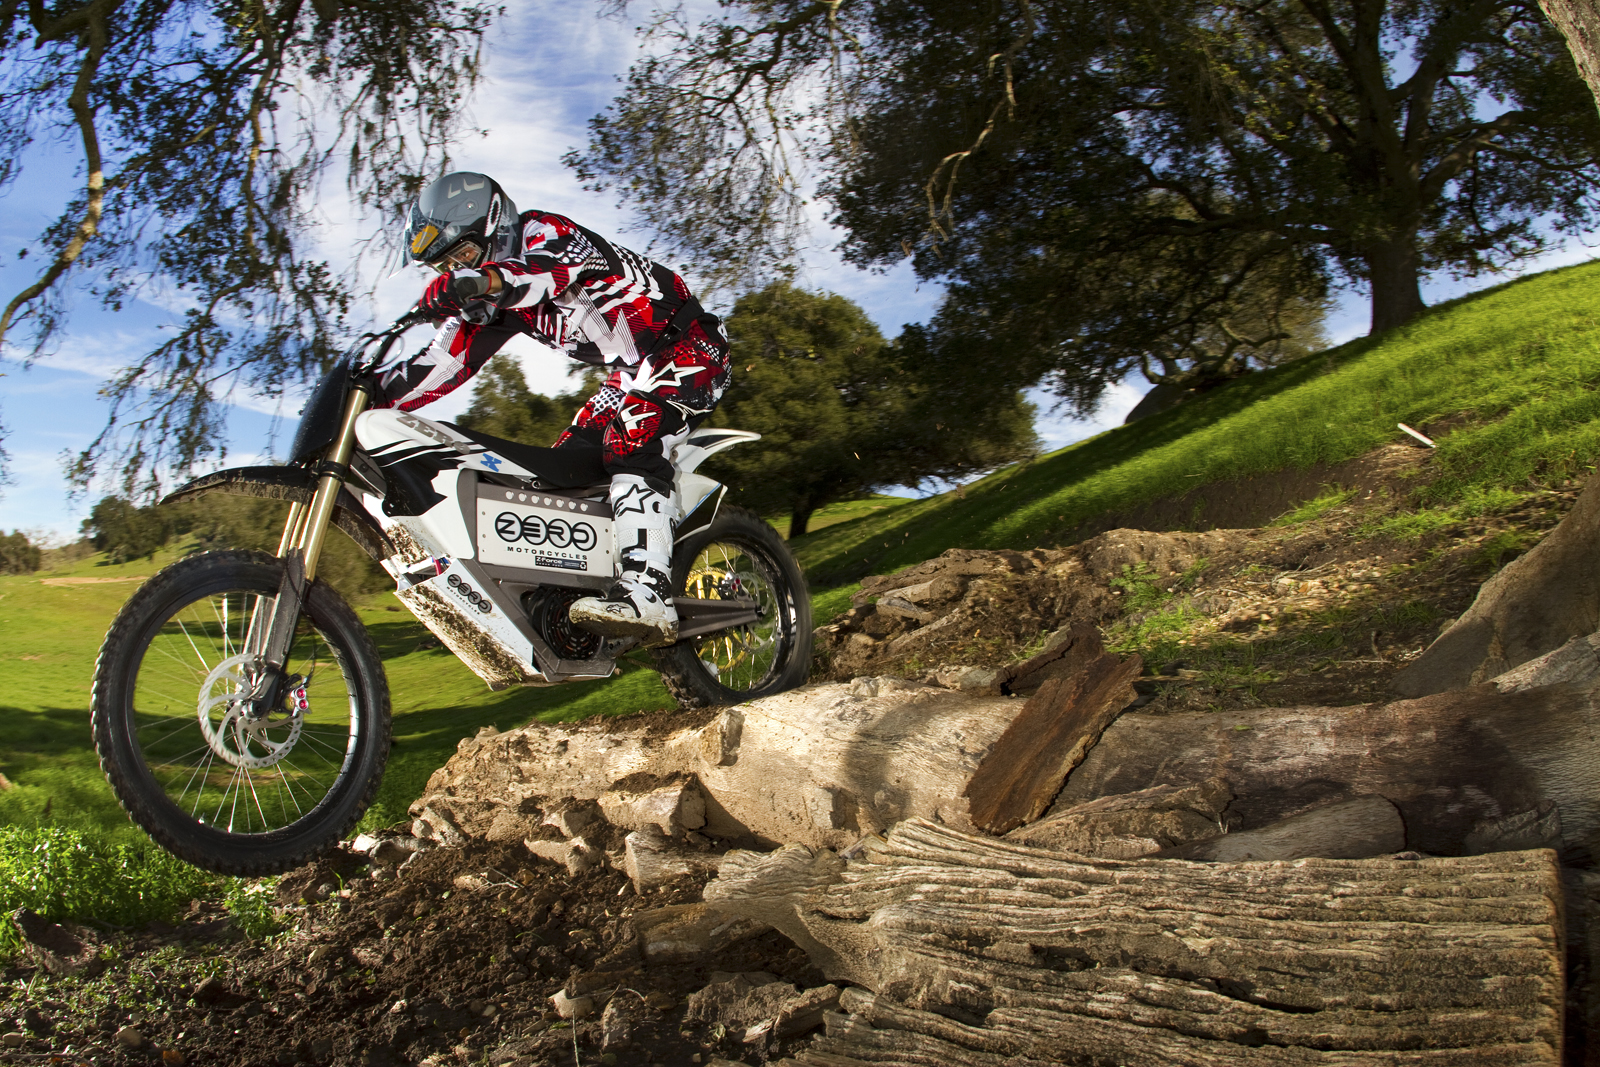 '.2010 Zero X Electric Motorcycle: Zaca Station - Trail over Log in Sun.'